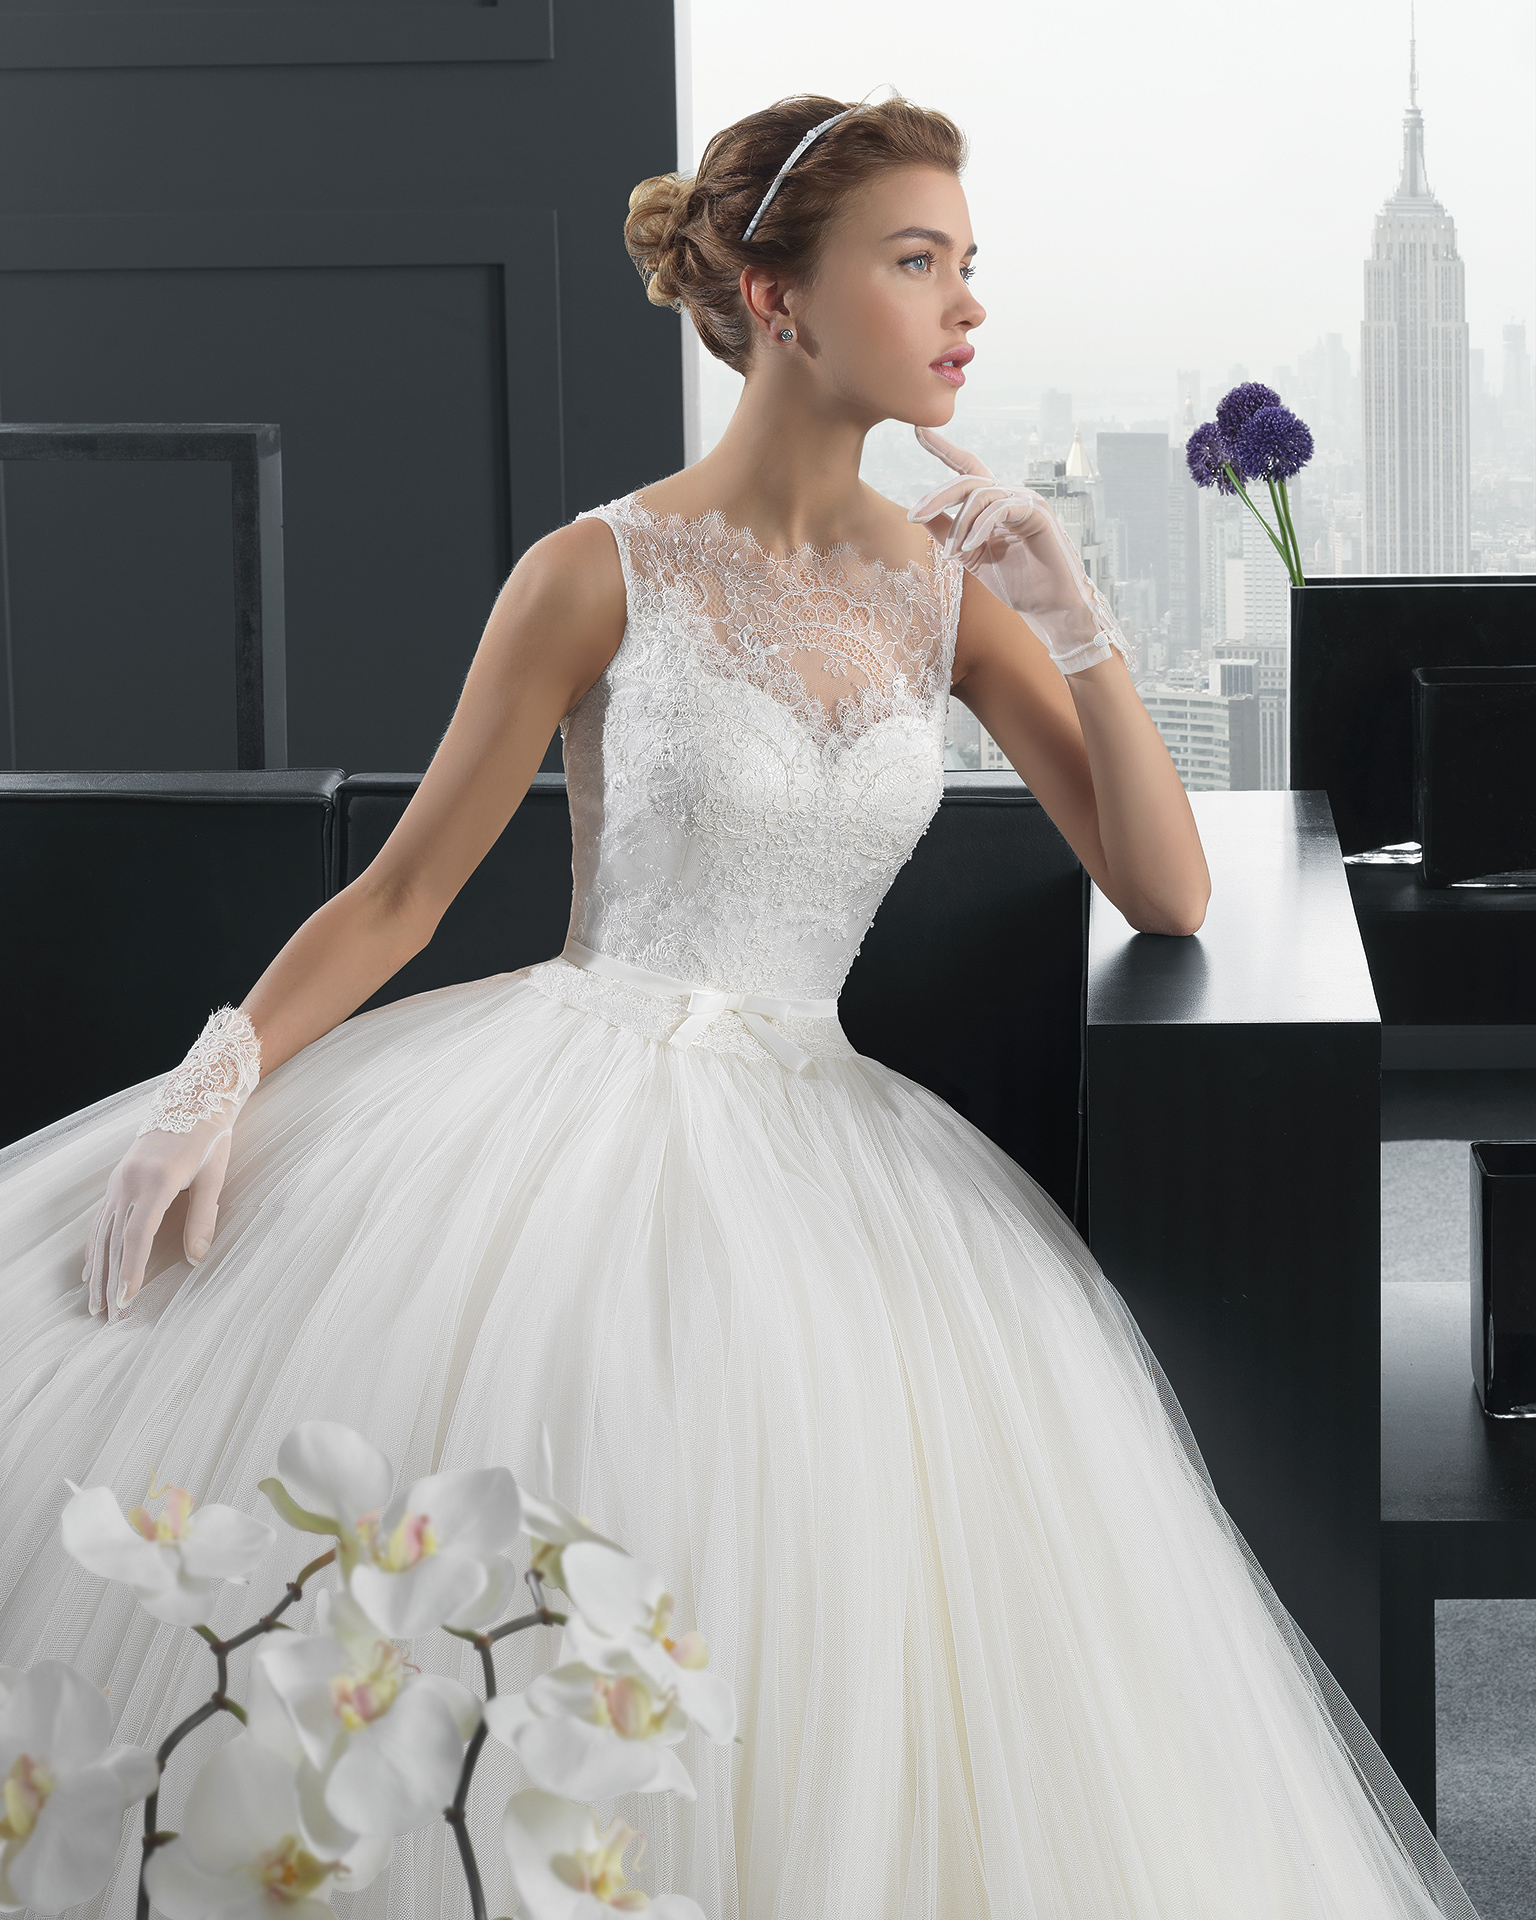 Two by rosa clara wedding dresses 2015 collection modwedding rosa clara wedding dresses 1 07292014nz ombrellifo Image collections